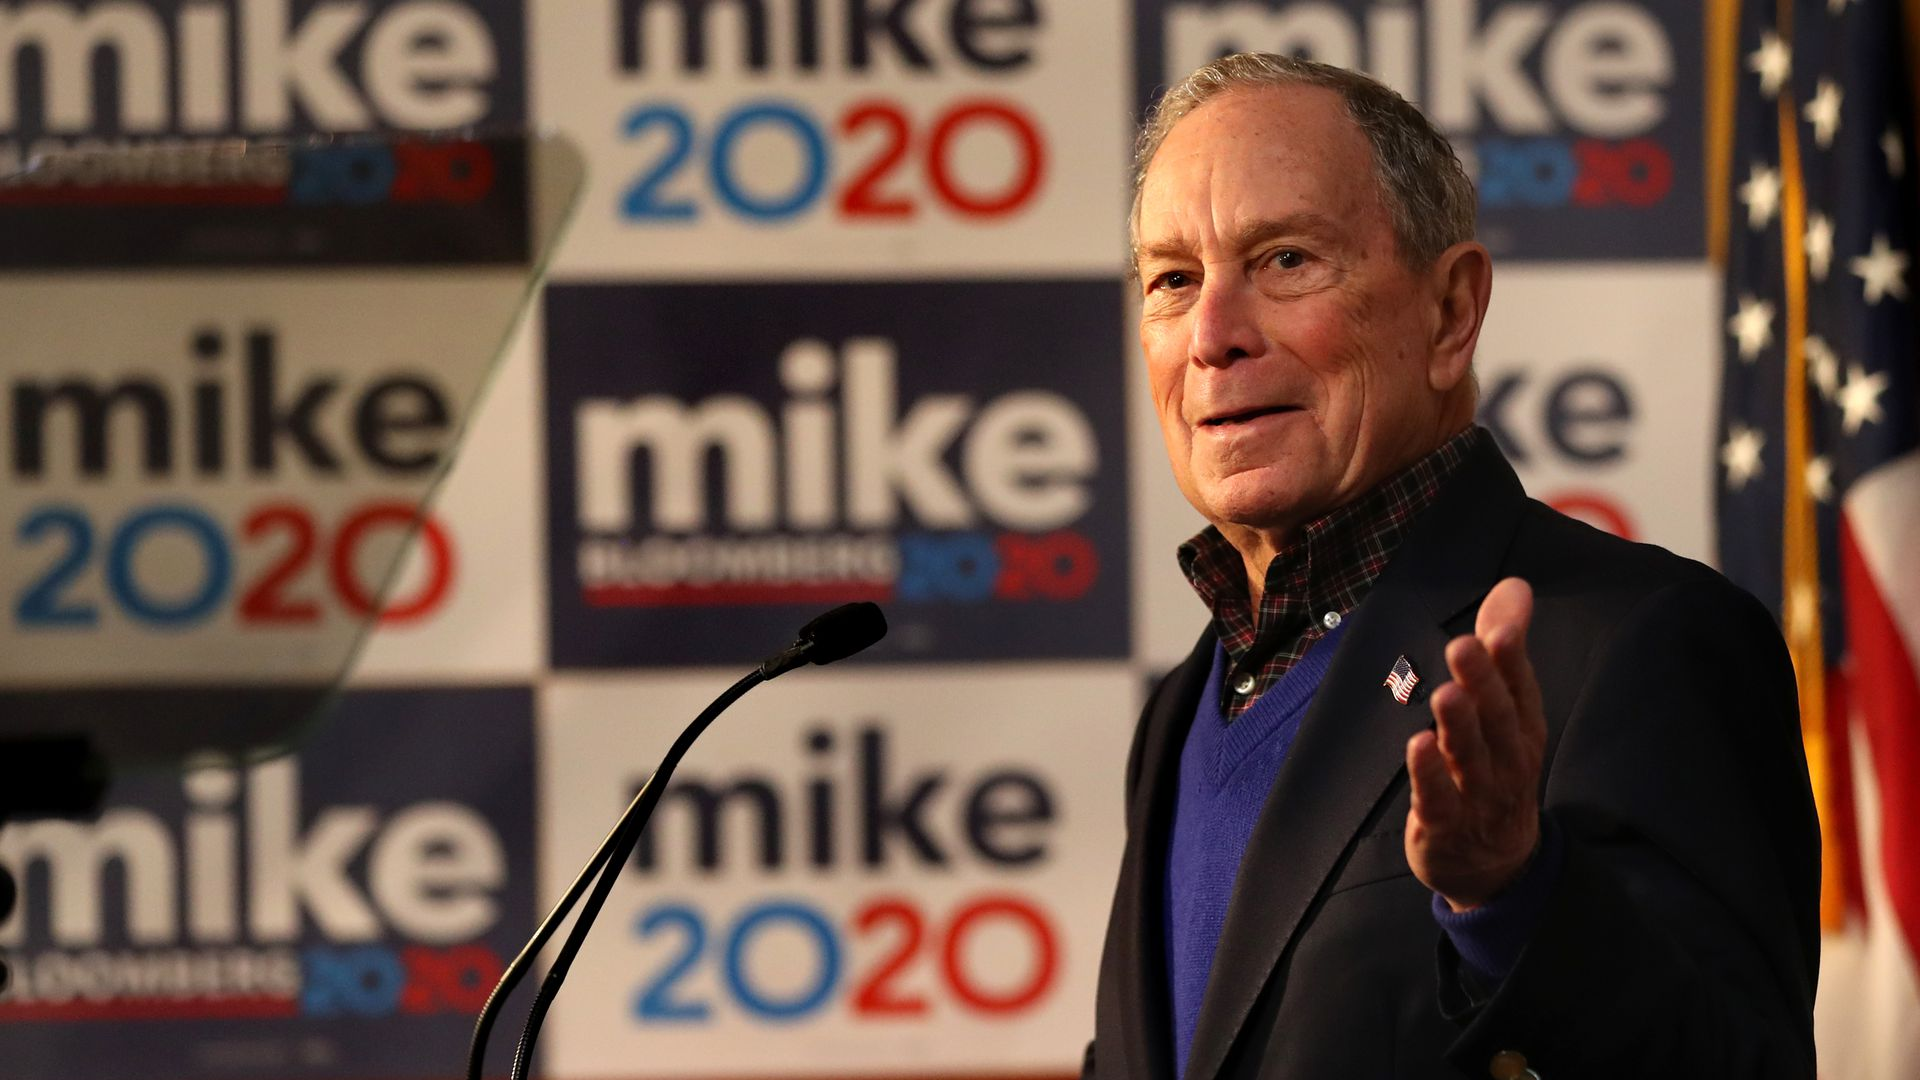 Presidential candidate Michael Bloomberg